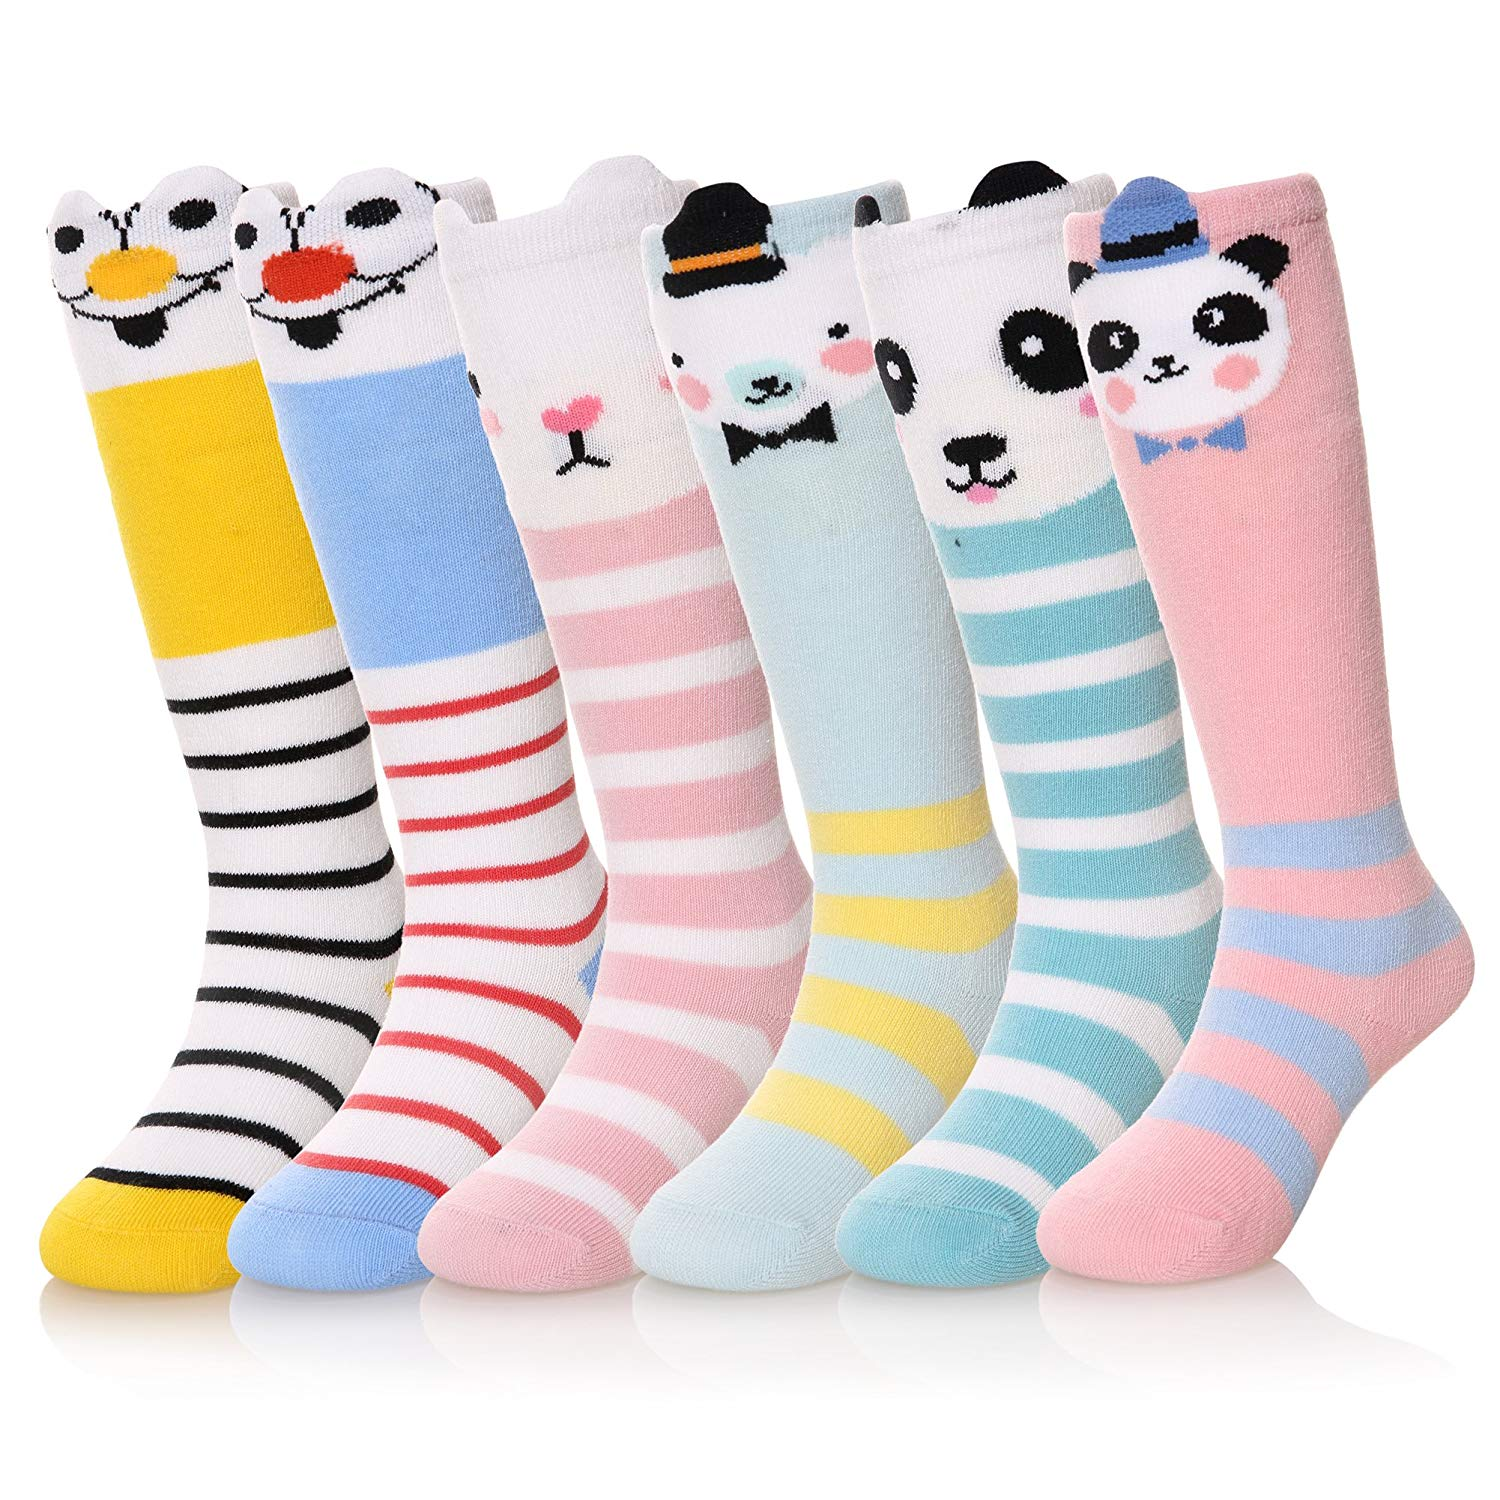 68c44cedbf4 Get Quotations · Unisex-Baby Knee High Socks Cute Animal Patterned  Stockings 6 Pairs